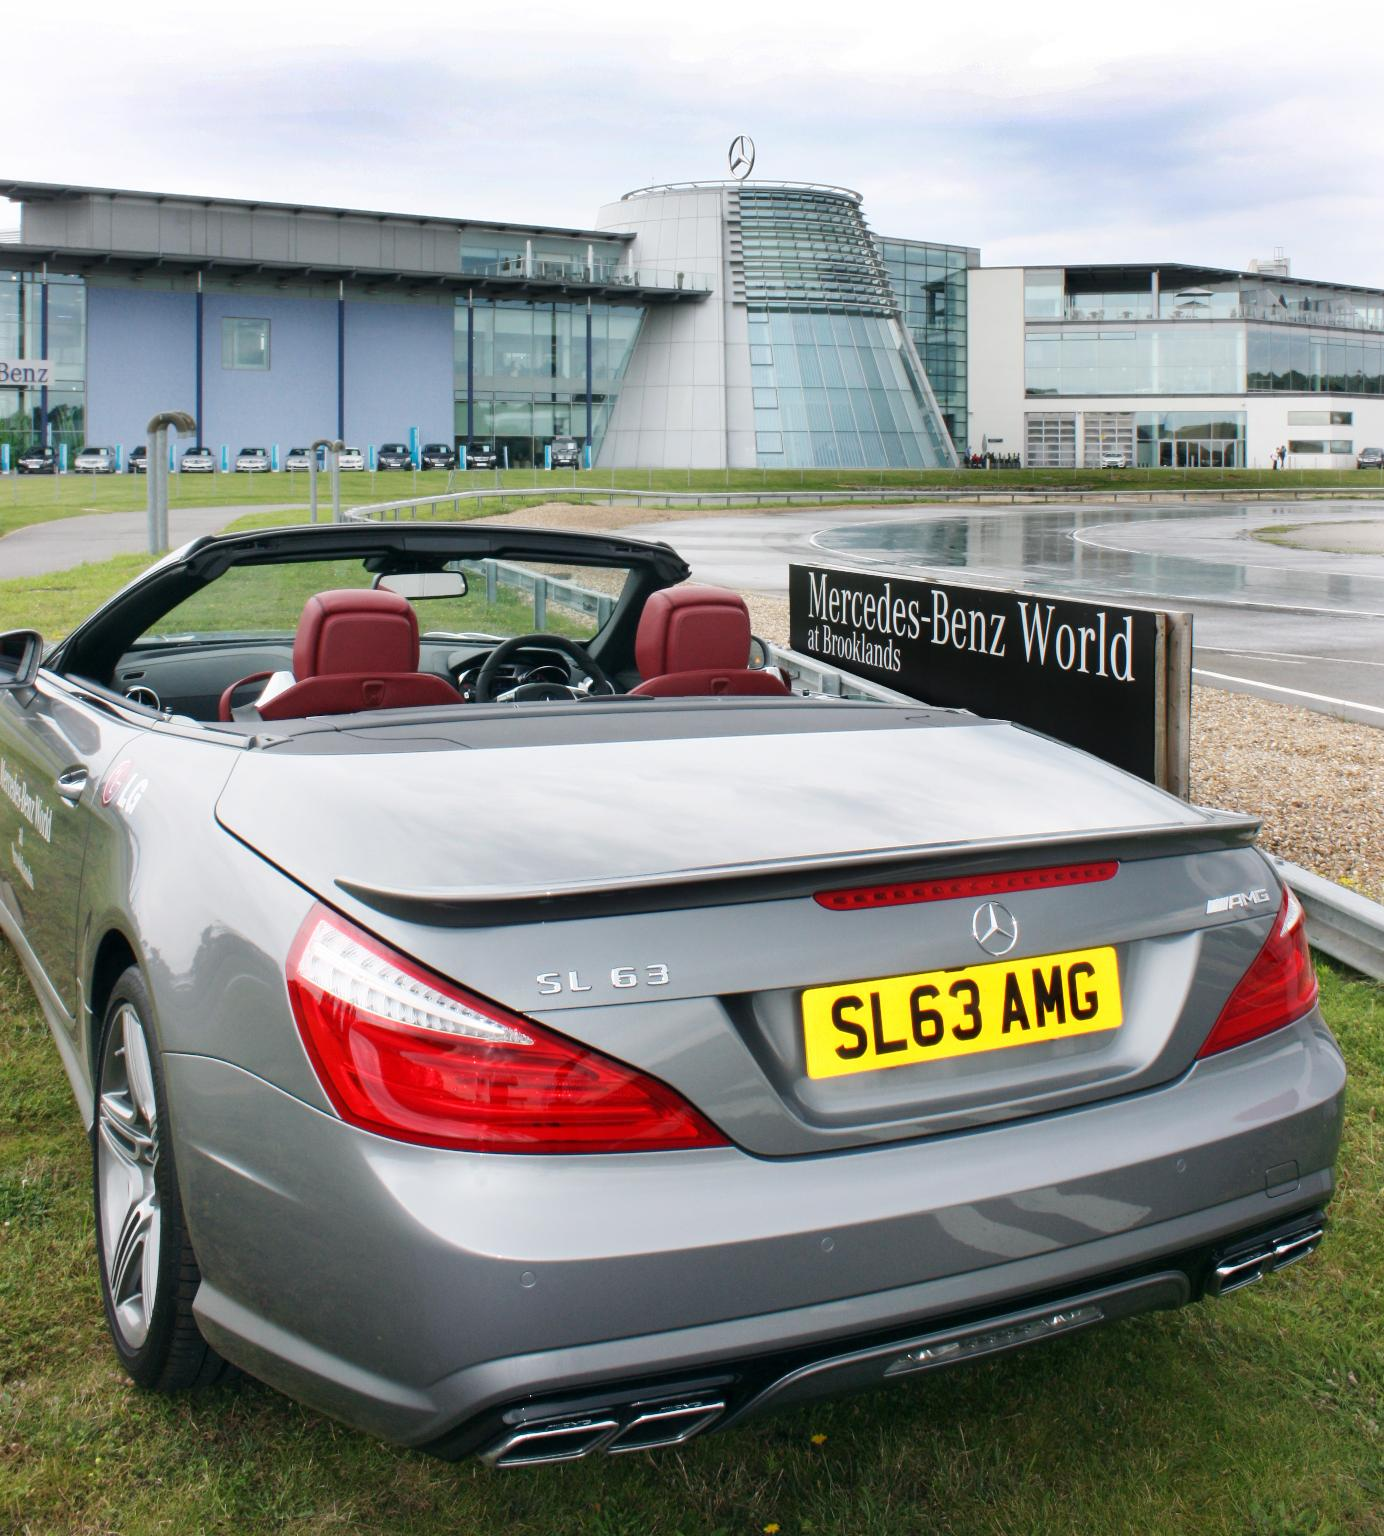 Sl 63 amg vanity plate for mercedes benz in the uk for Mercedes benz vanity license plates